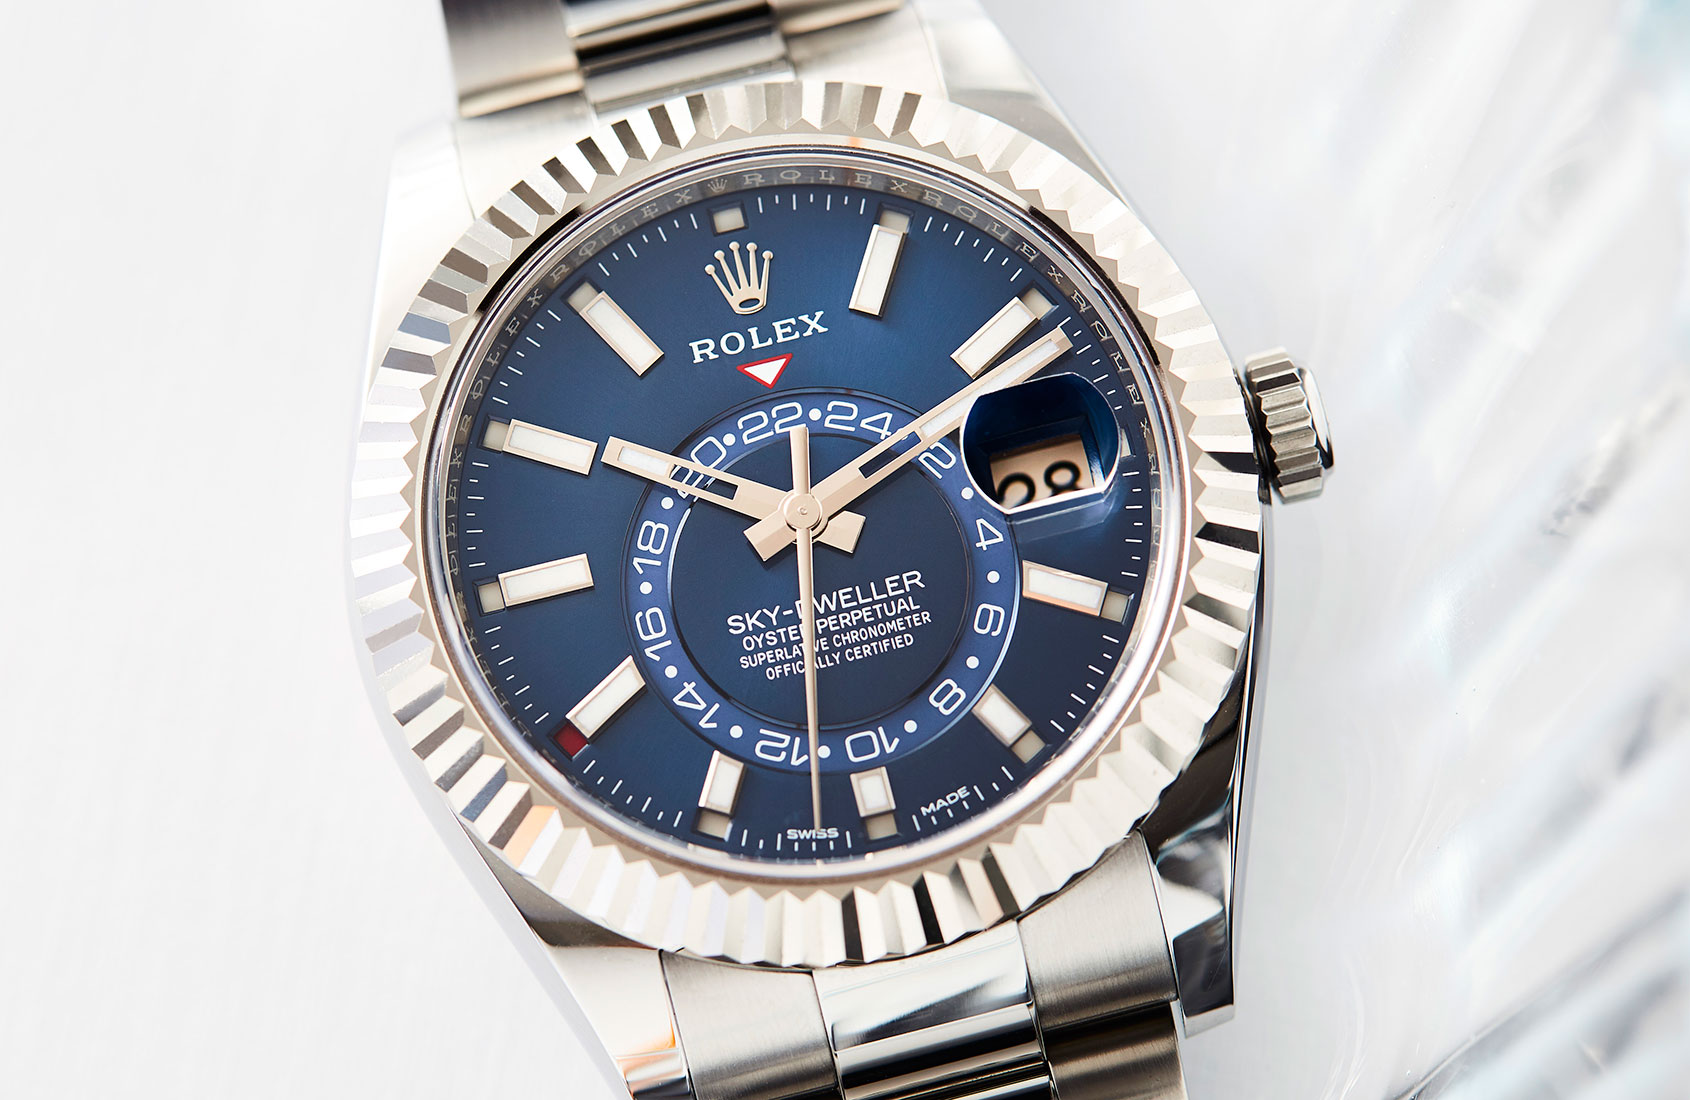 Rolex reach for the skies with the Sky-Dweller